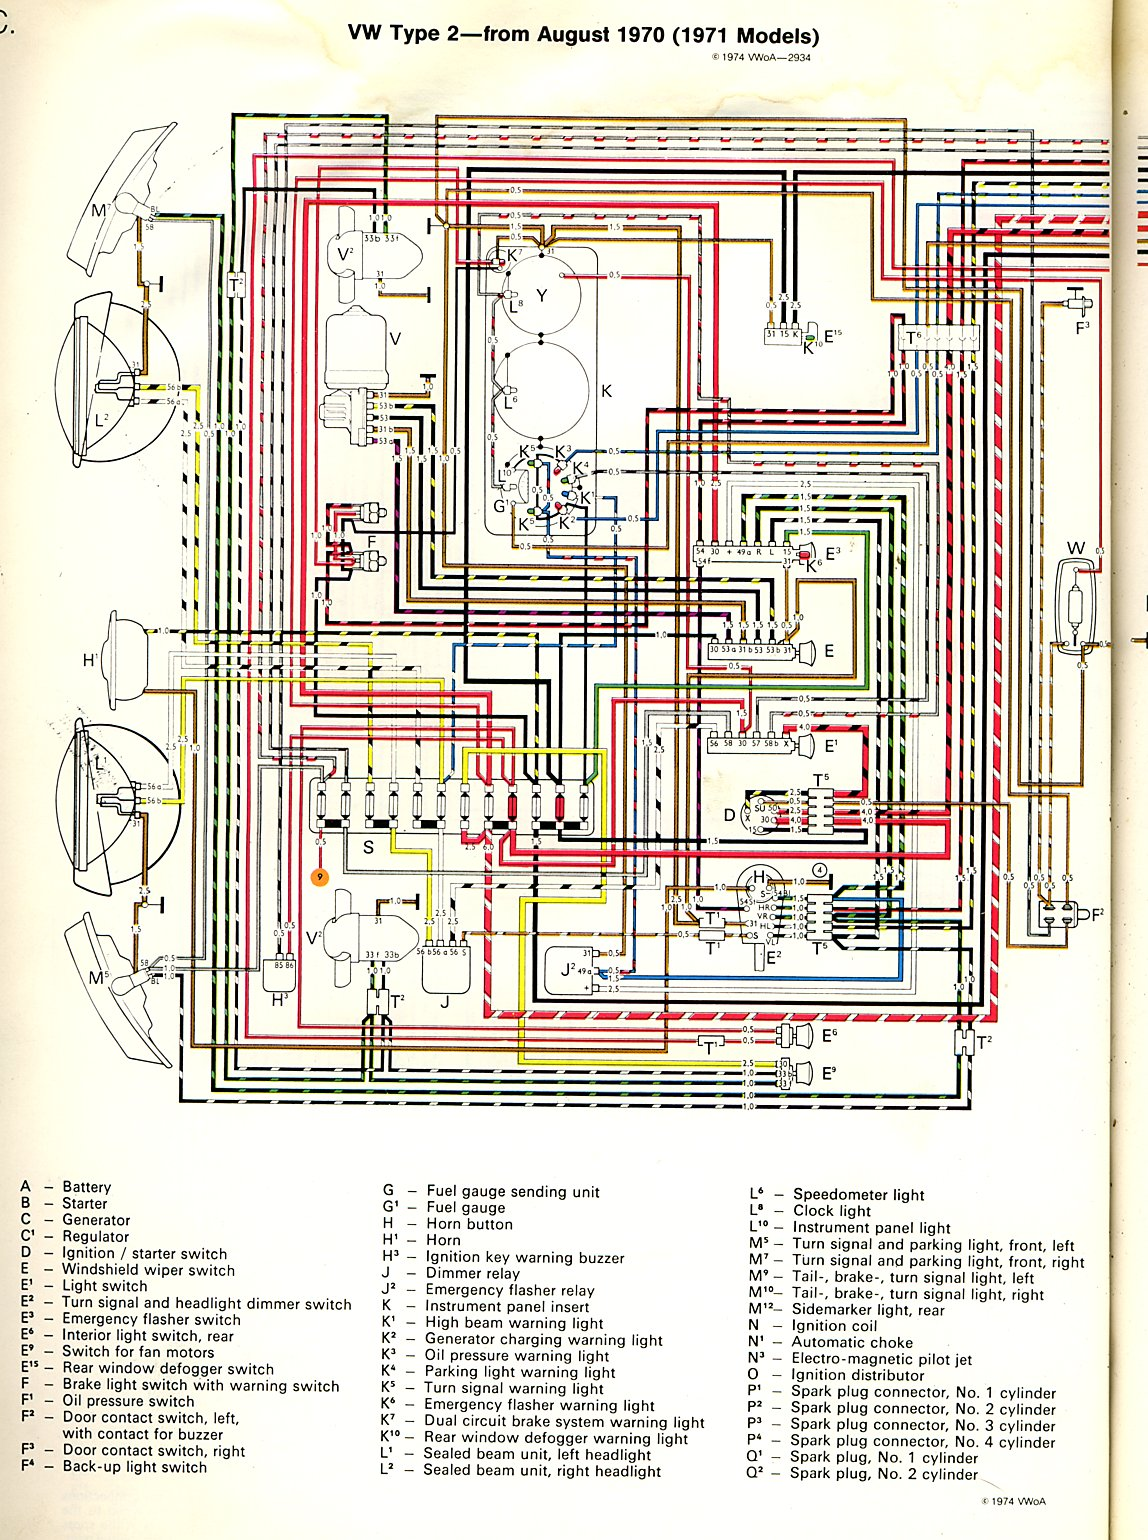 1973 Camaro Dash Support Diagram Diy Enthusiasts Wiring Diagrams 1970 Ignition Automotive Rh Banyan Palace Com